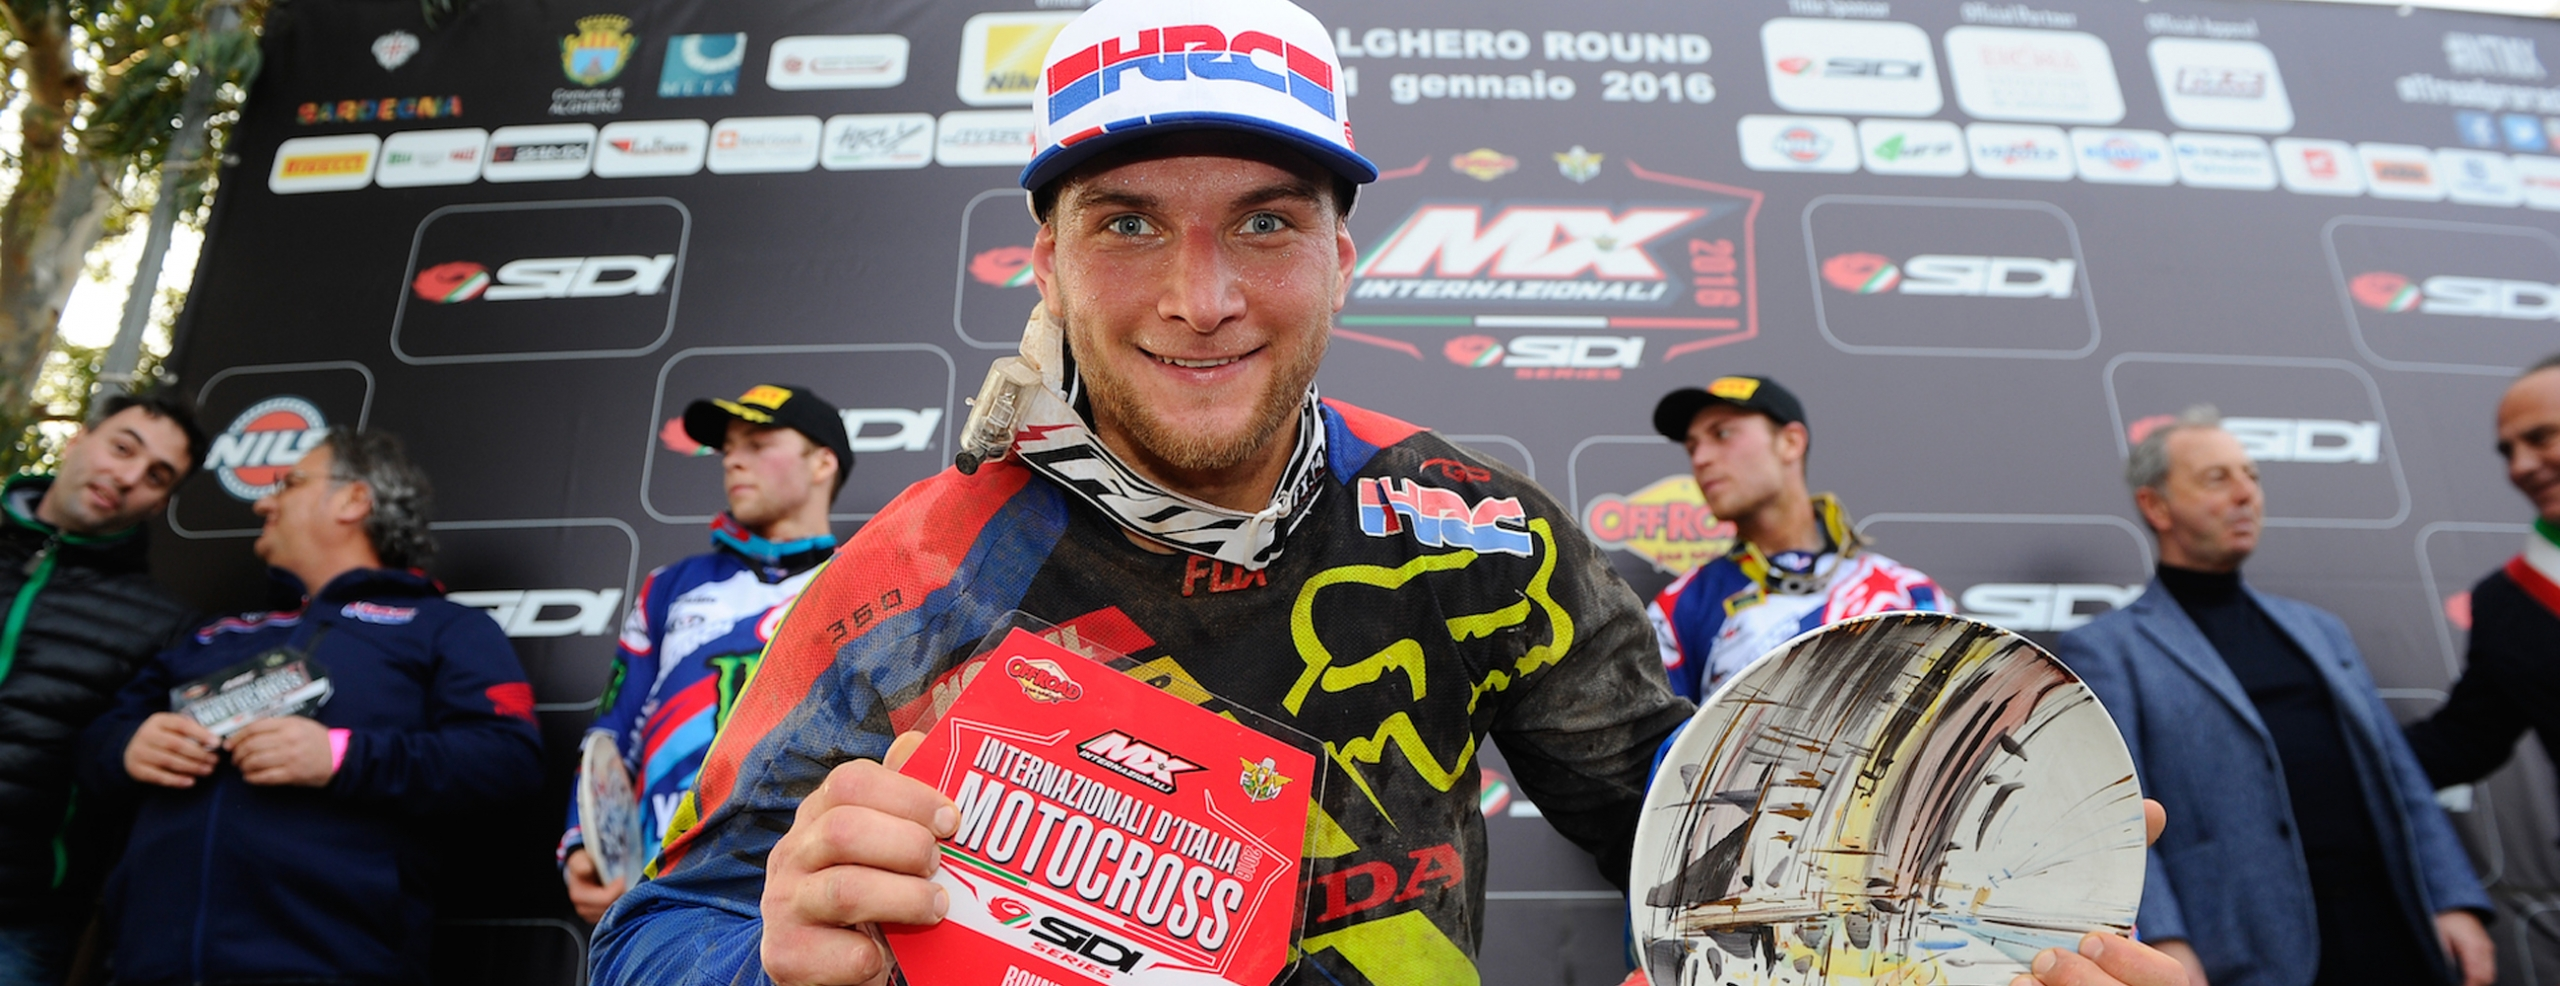 Bobryshev takes first victory of the season